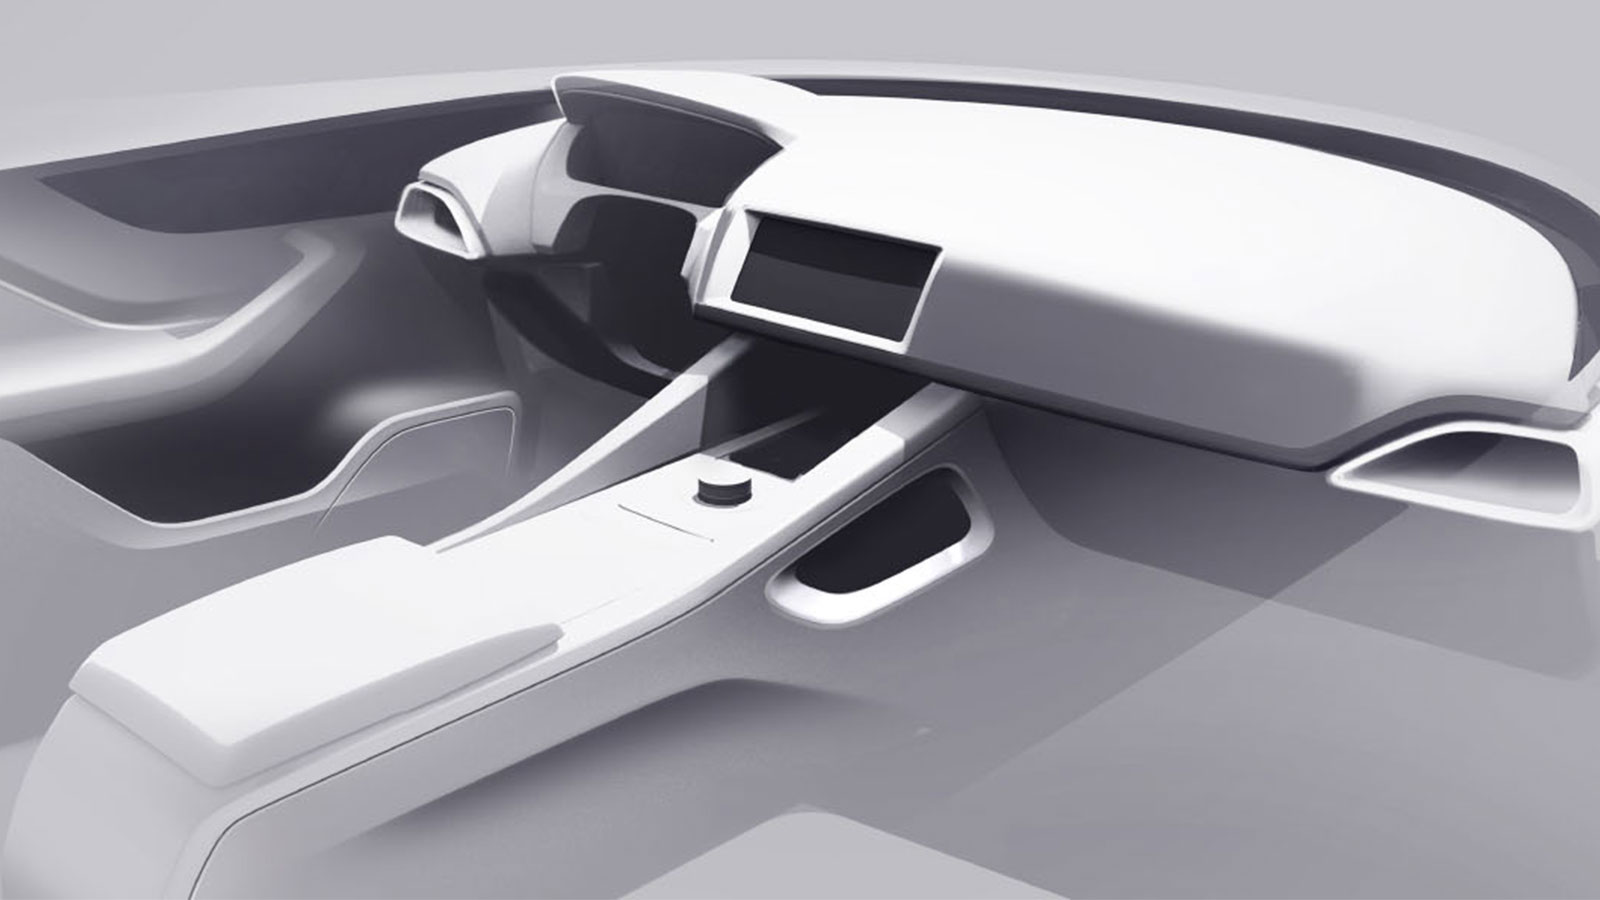 A CGI image of a early design for the interior of a Jaguar vehicle.